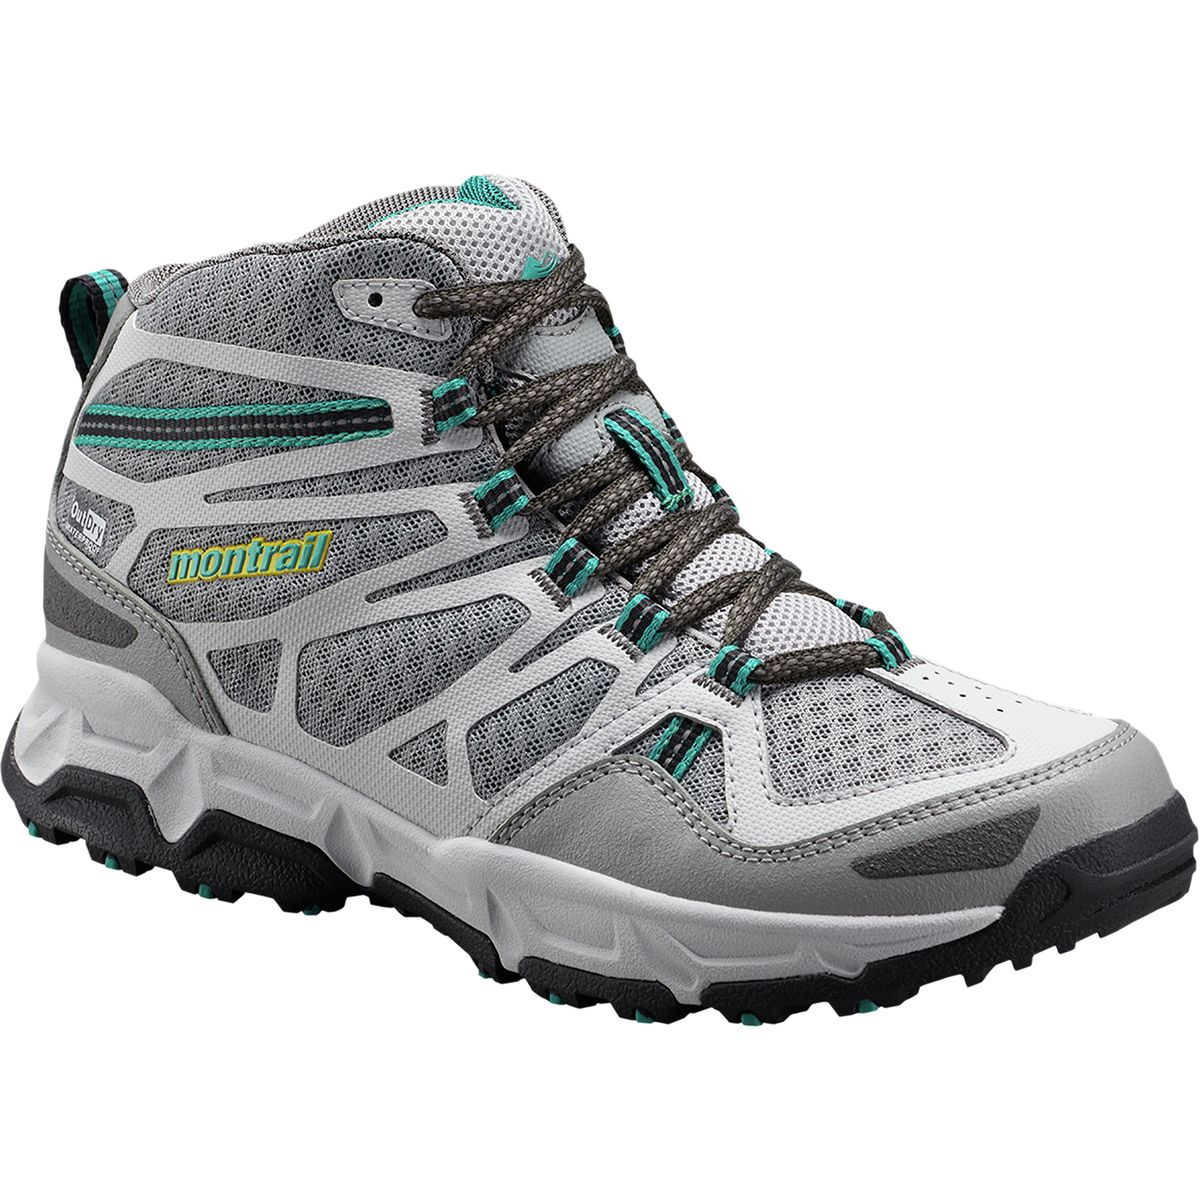 Perfect HiTec Womens WN Logan Mid WP Hiking Boot, CharcoalCool GreyLichen, 8 M US &gt&gt&gt Be Sure To Check  We Tested This Years Crop Of Hiking And Backpacking Footwear To Find The Best Hiking Boots, Trail Runners, And Other